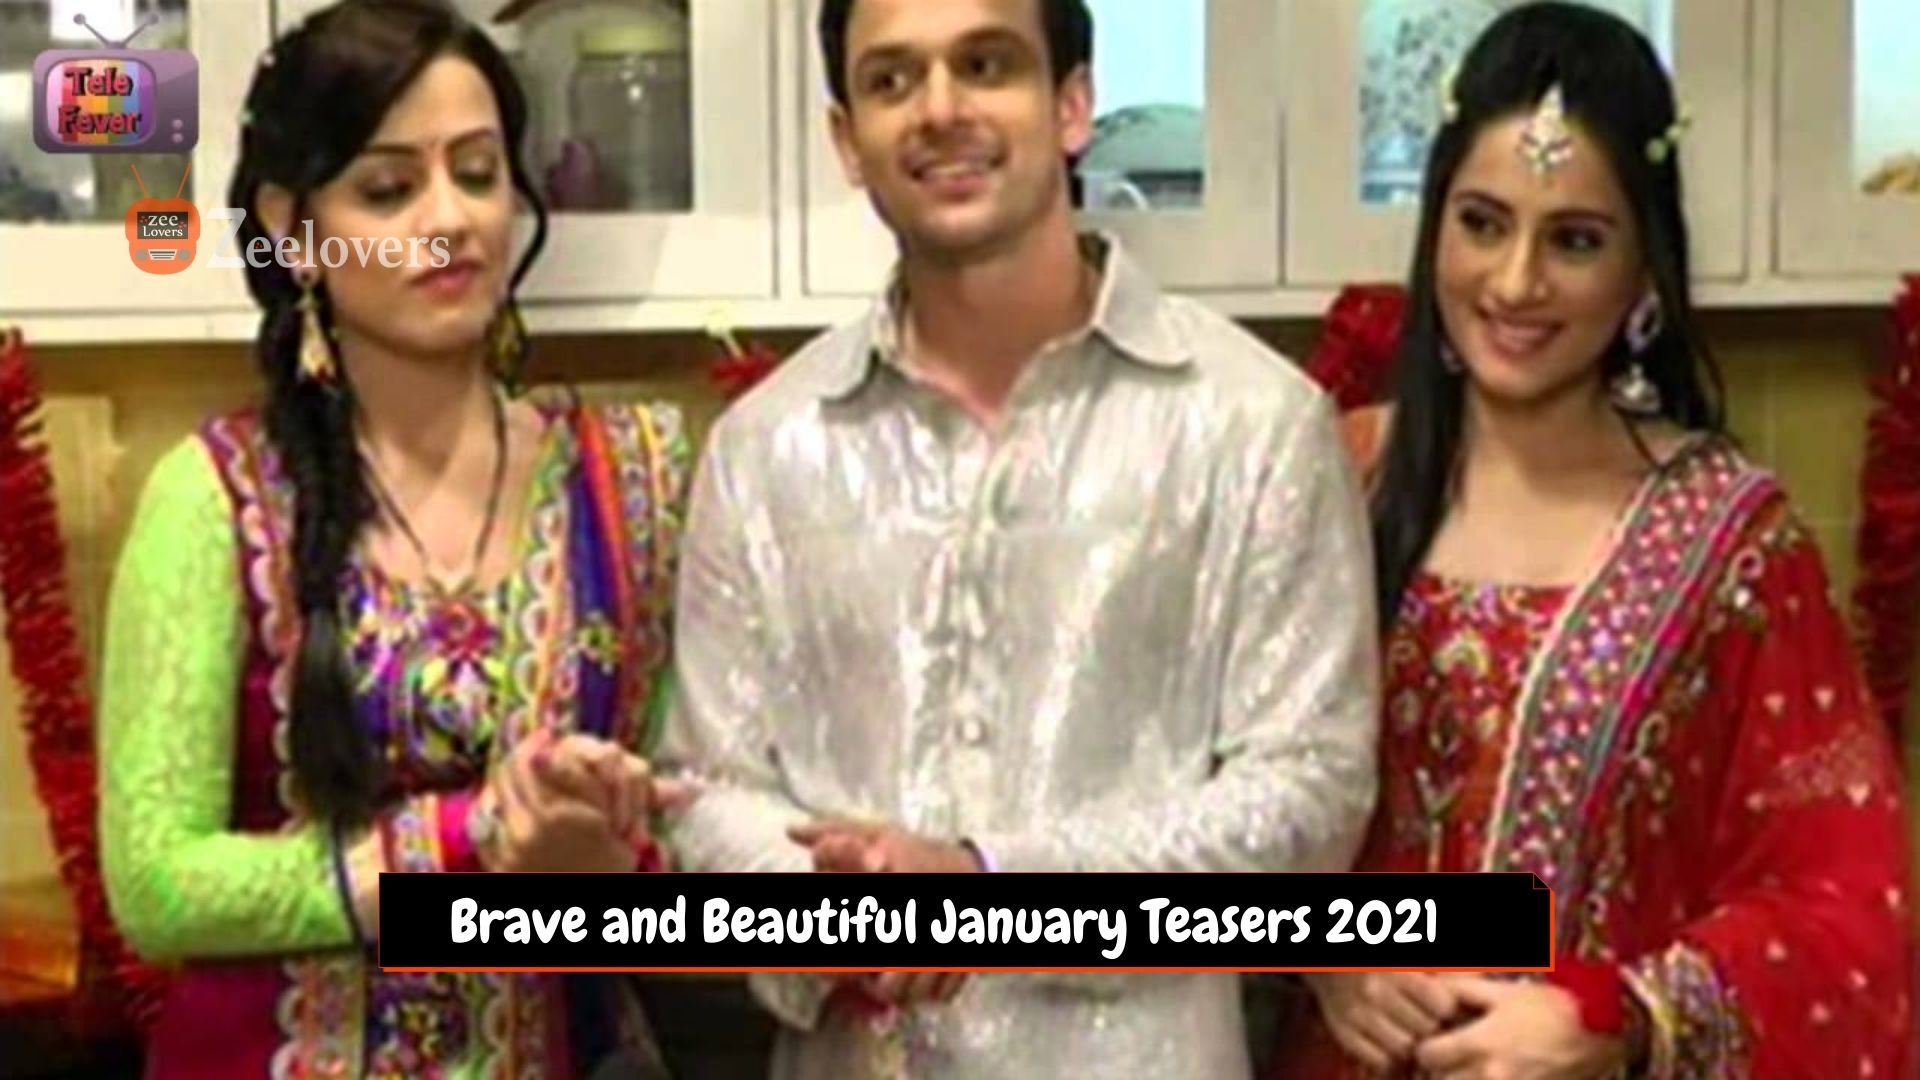 Brave and Beautiful January Teasers 2021